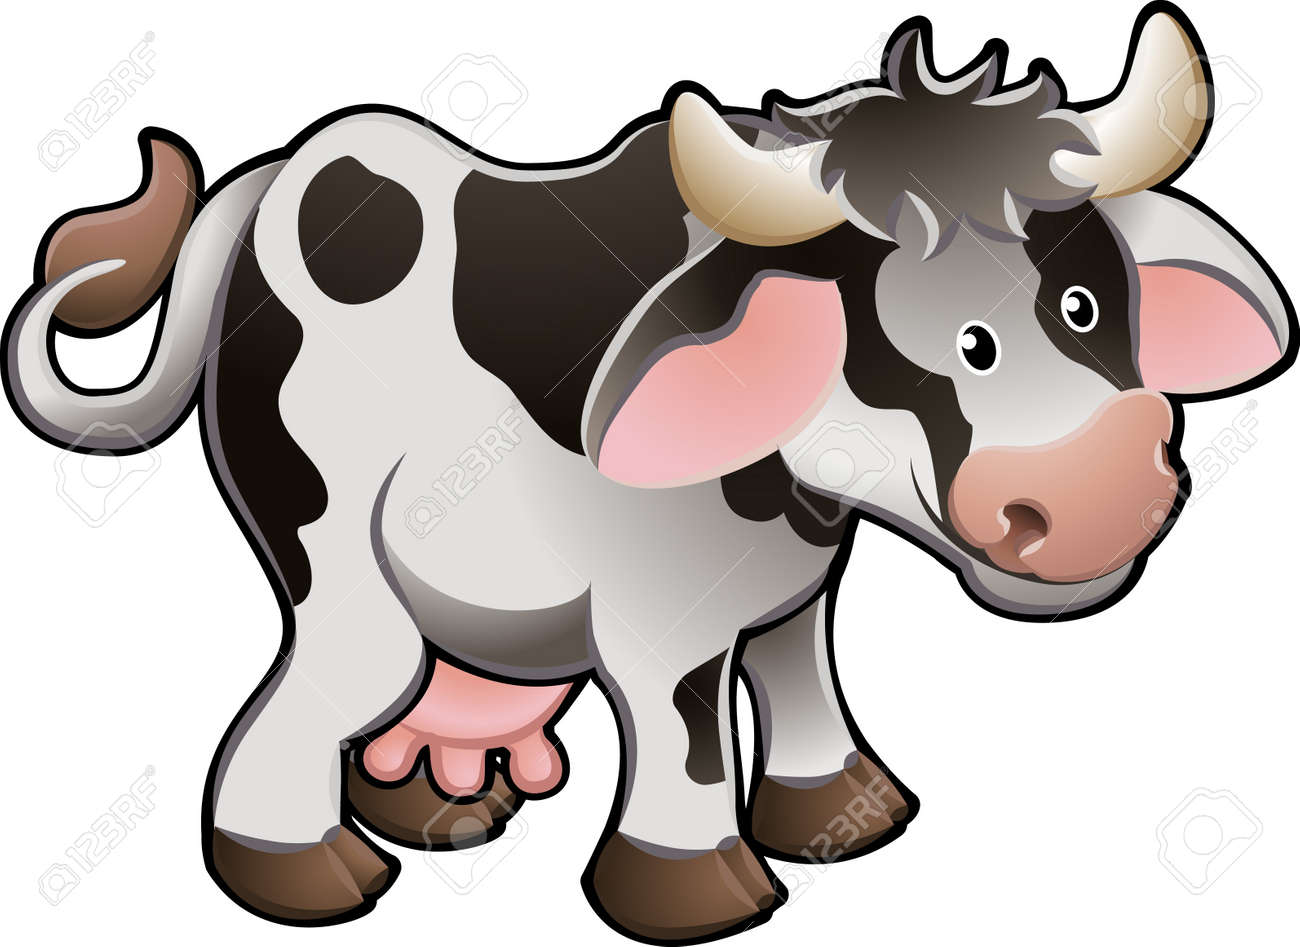 Vector Illustration Of a Cute Dairy Cow Stock Vector - 2909564